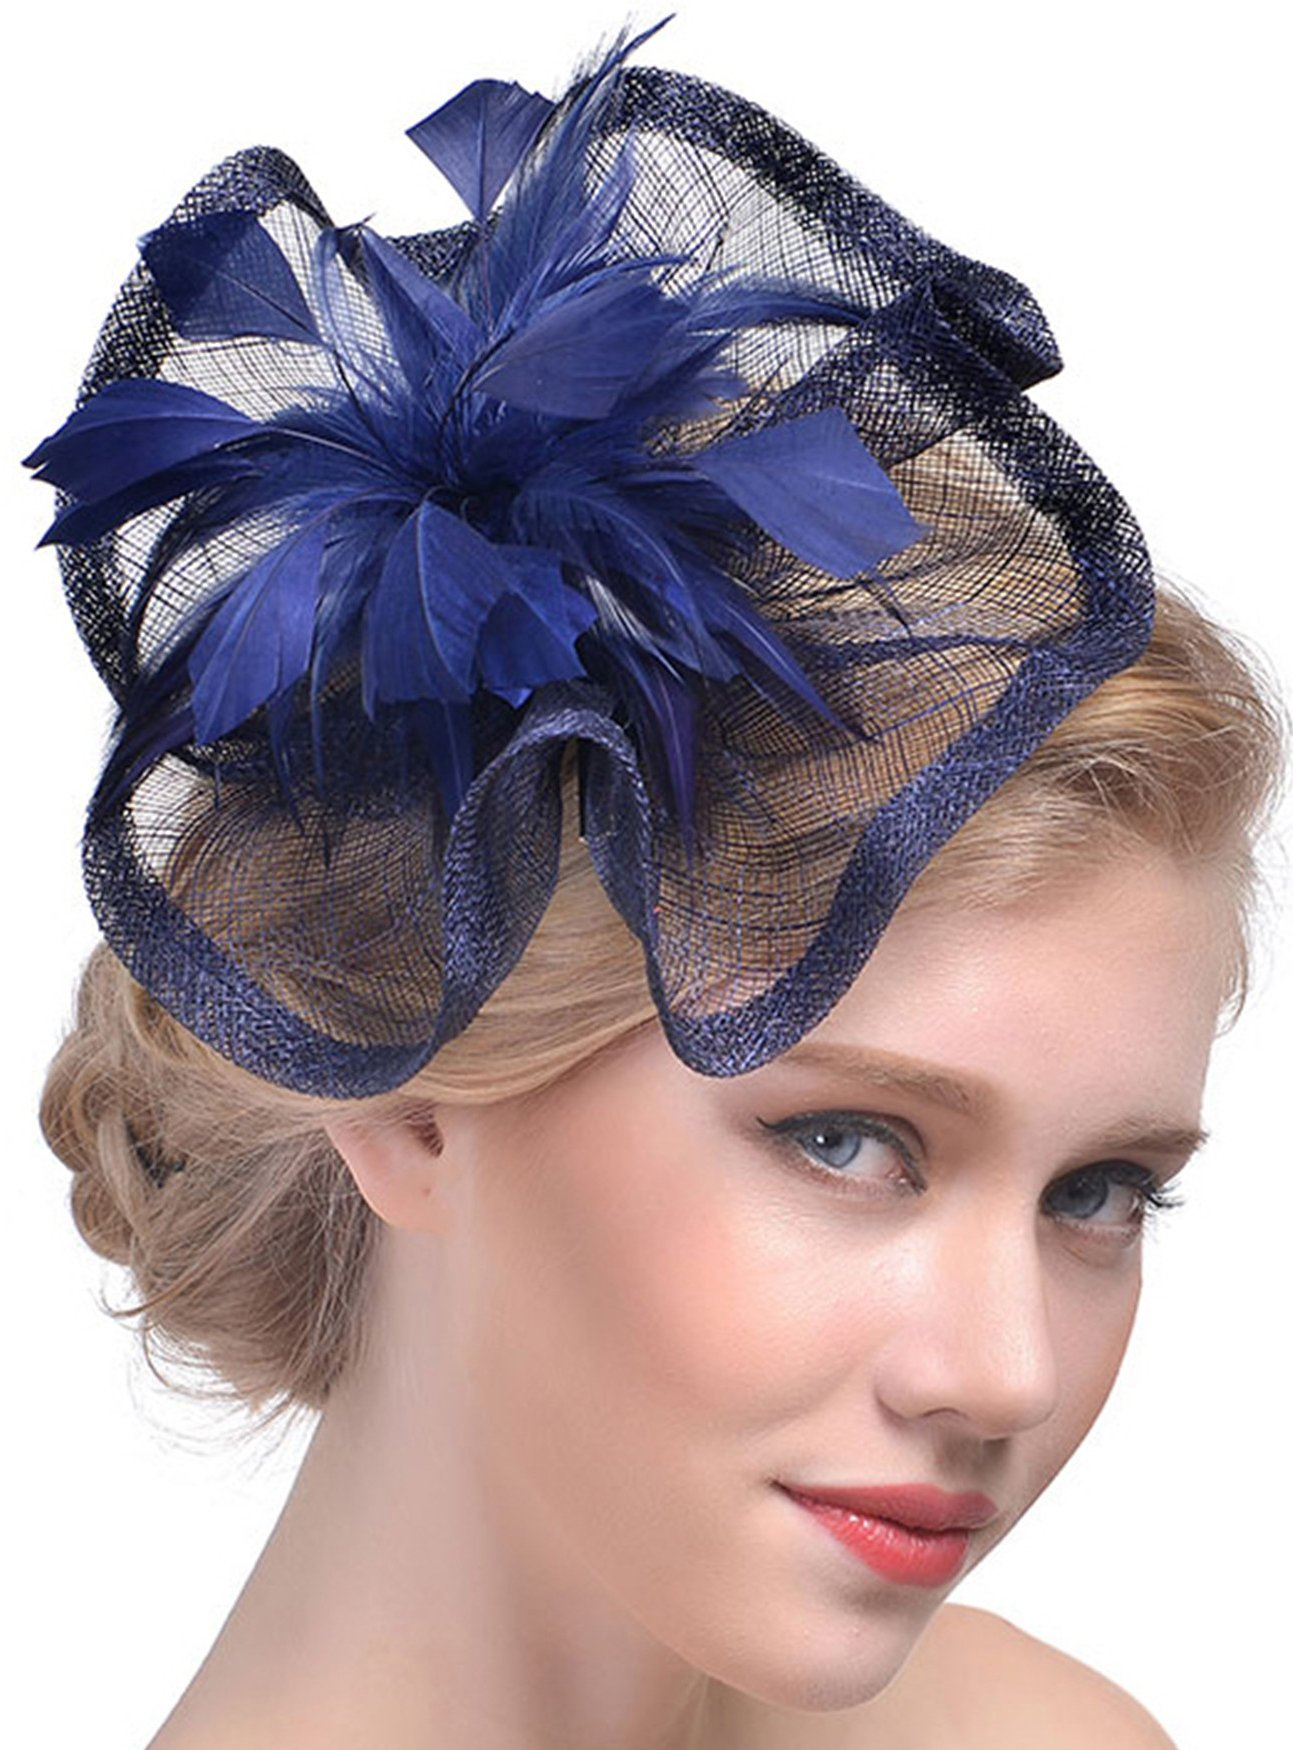 Feather Fascinators Hair Clip Pillbox Hat Derby Party Headdress Bride Headwear (Navy Blue)